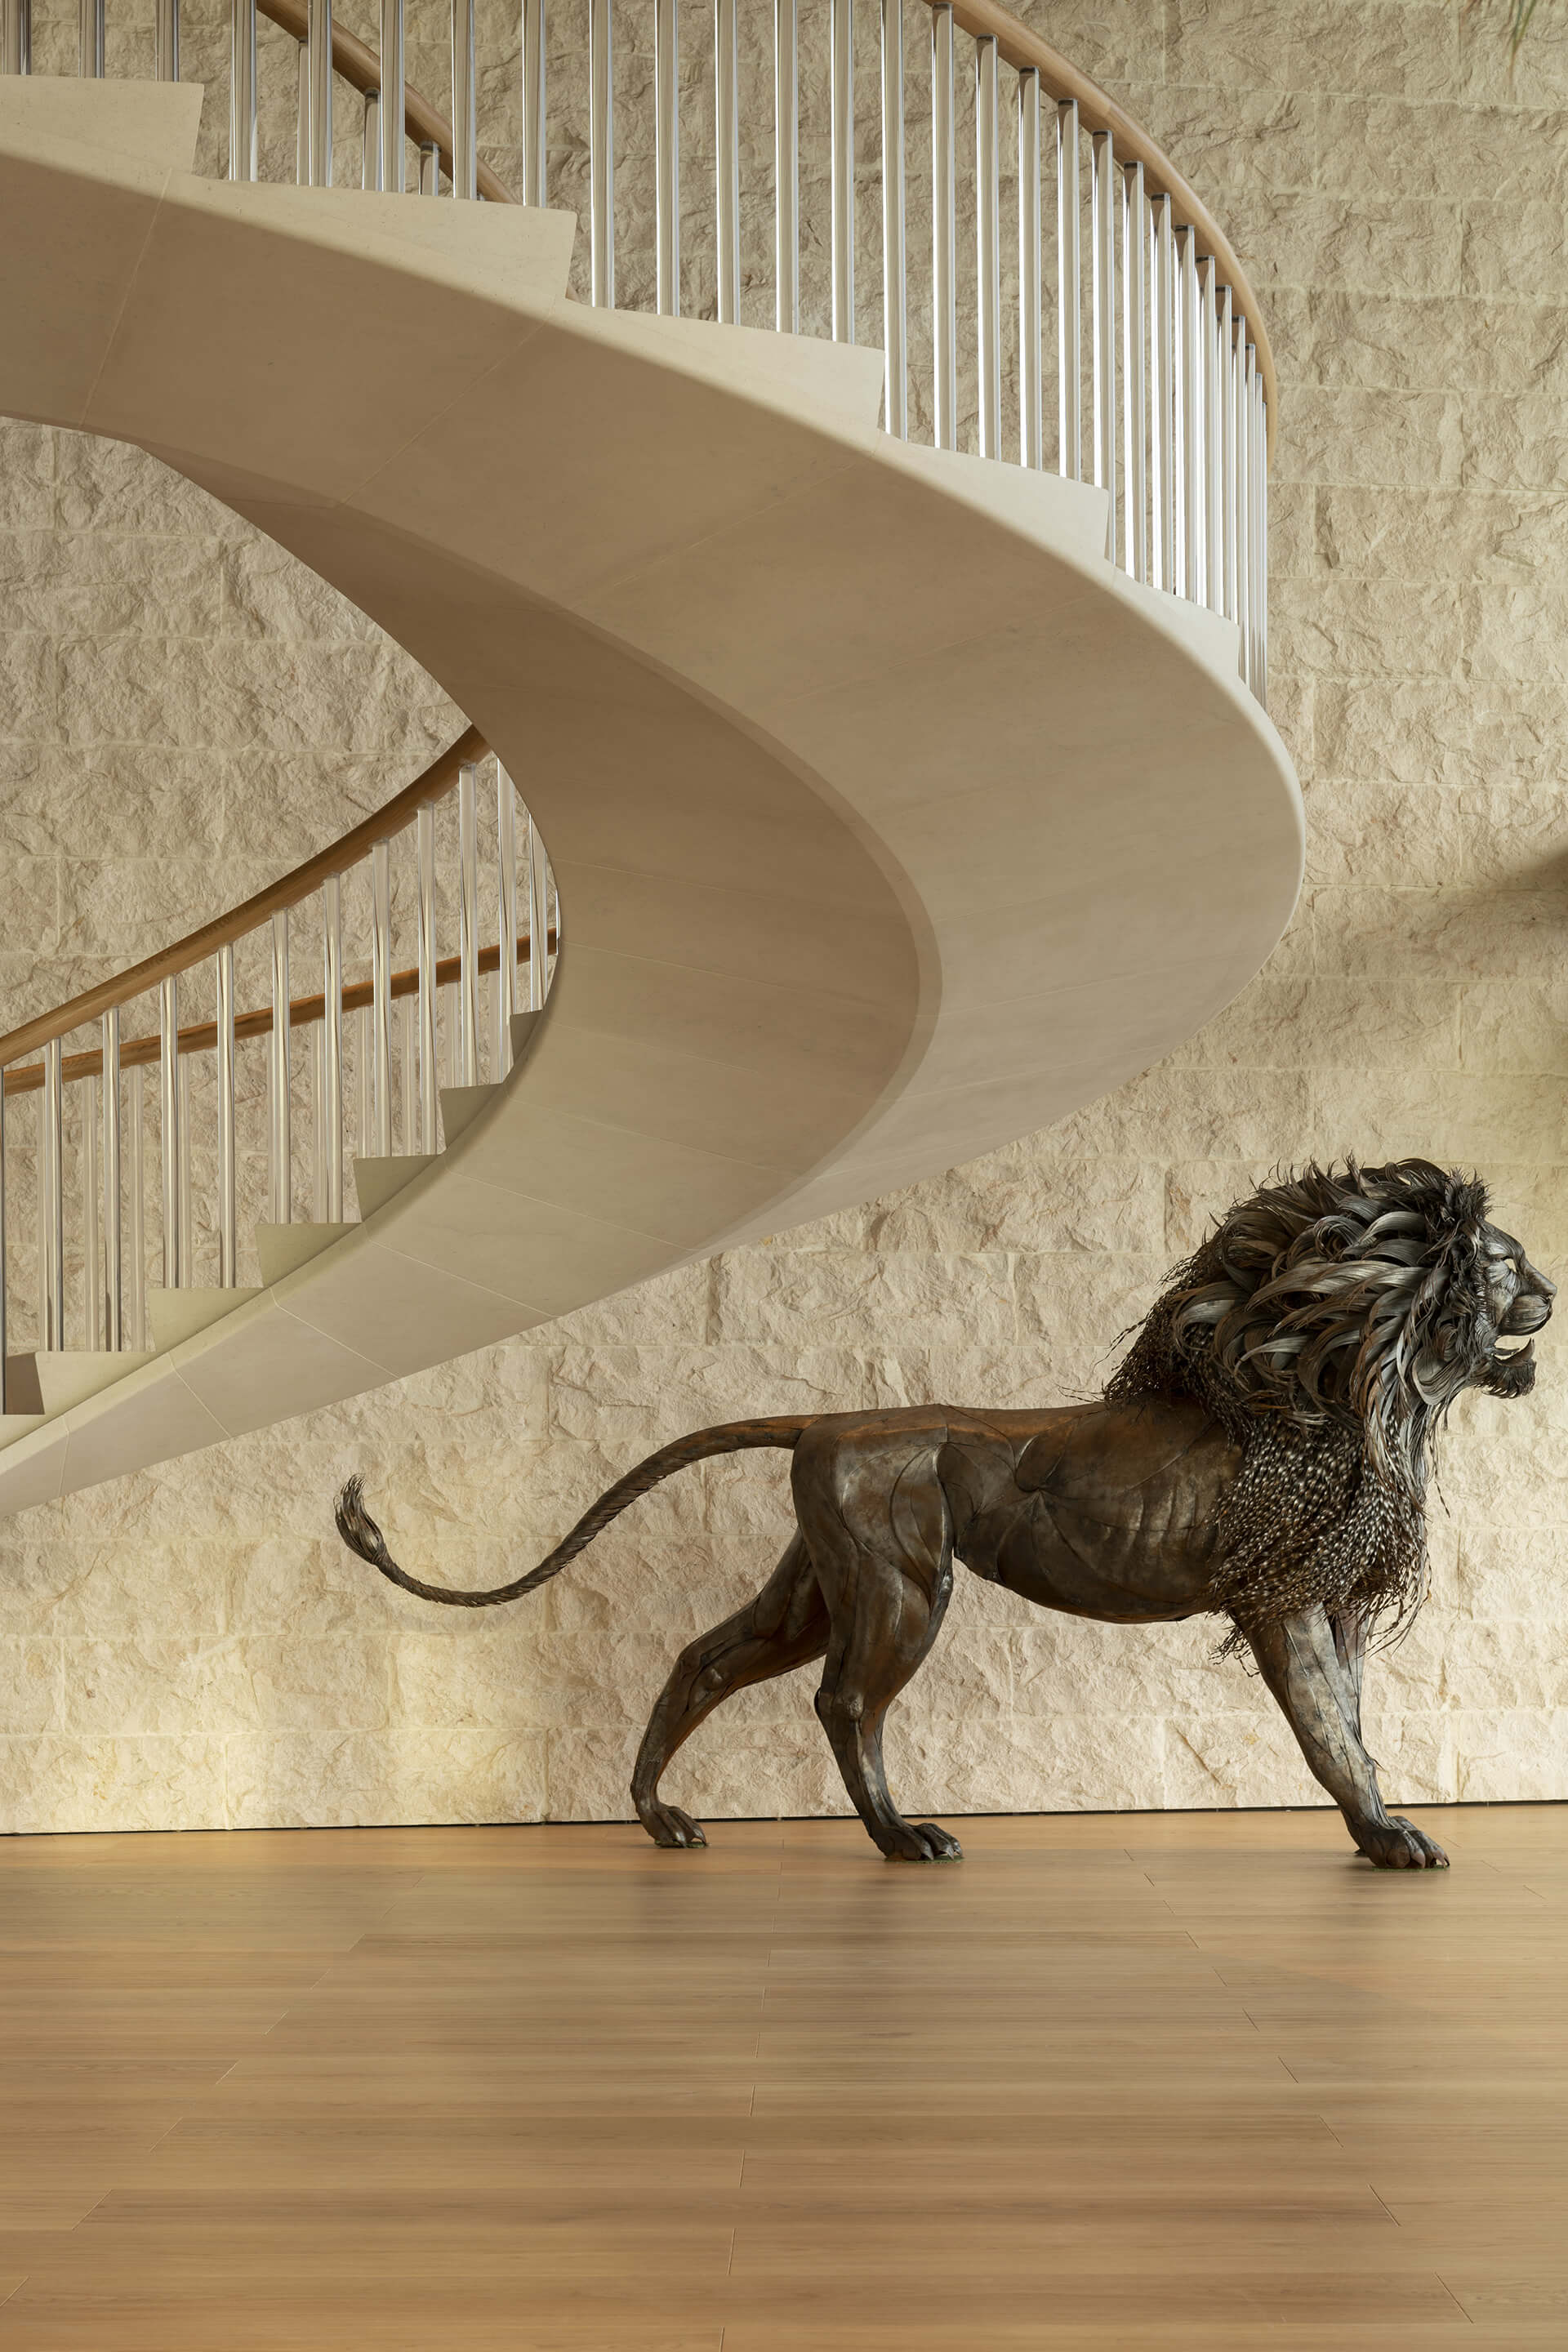 The uniquely designed central staircase | Dolunay Villa in Mulga | Foster and Partners | STIRworld